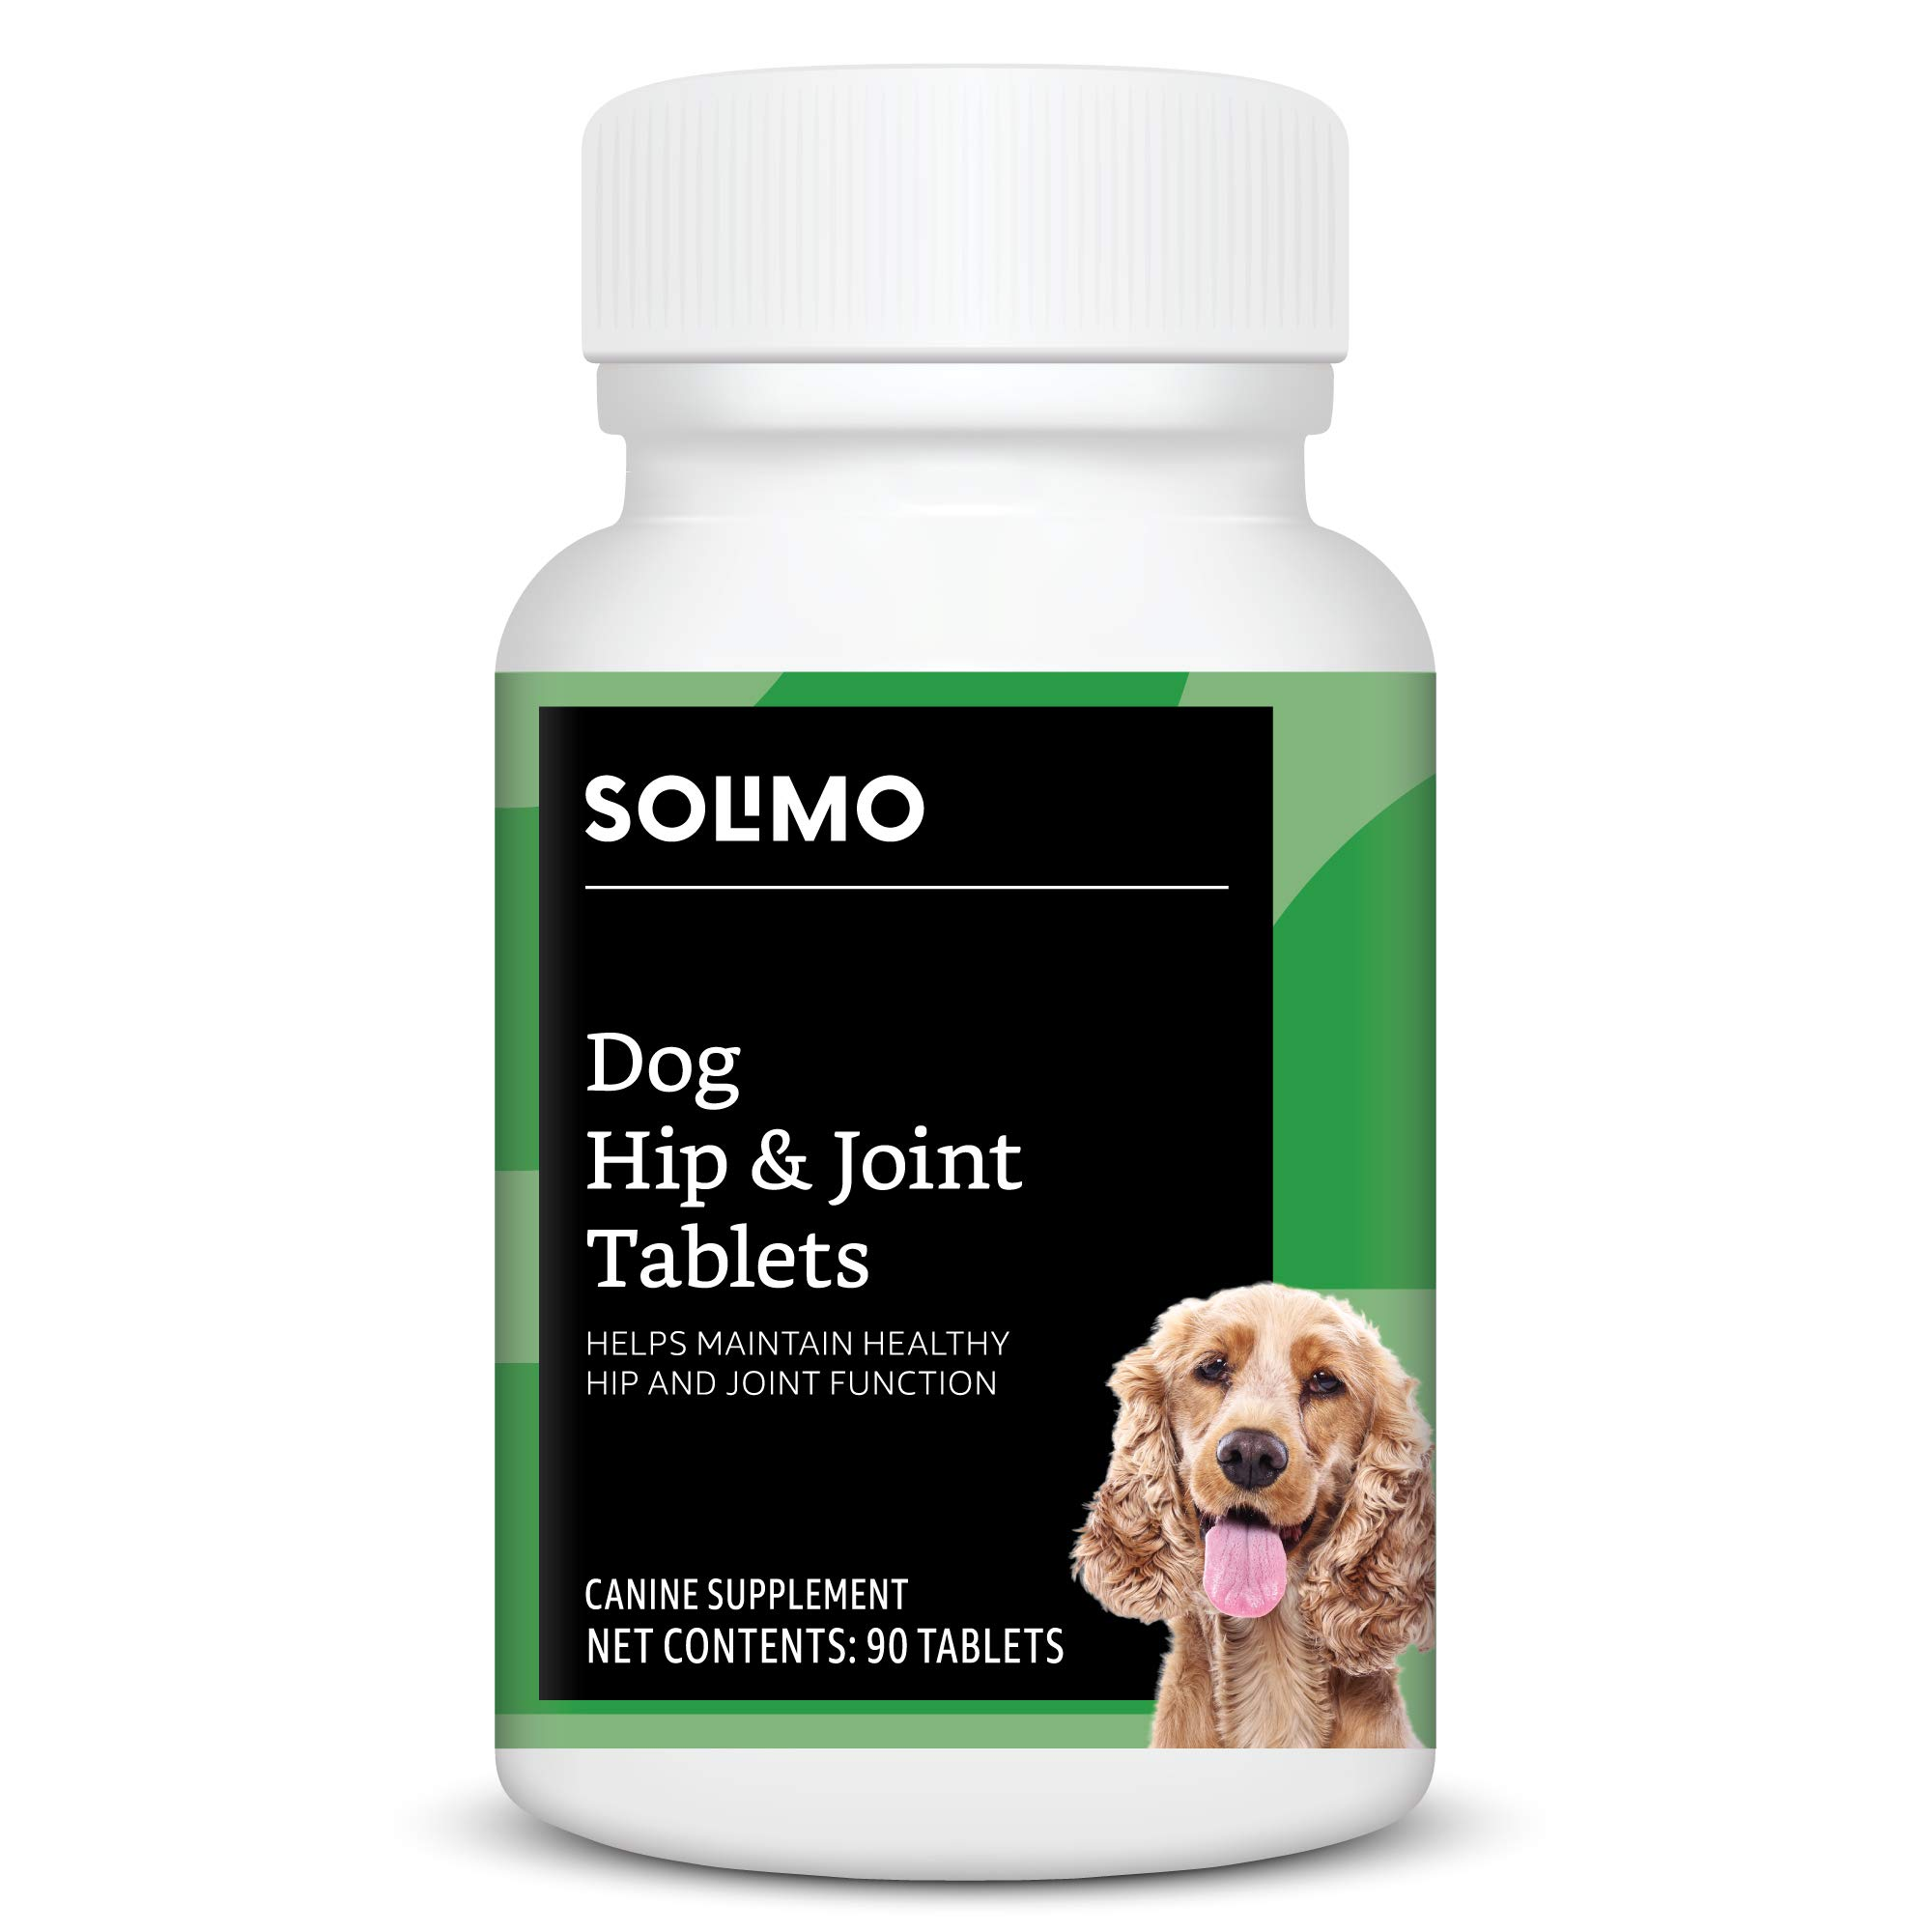 Amazon Brand - Solimo Dog Hip & Joint Chewable Tablets, Duck Flavored, 90 Count by Solimo